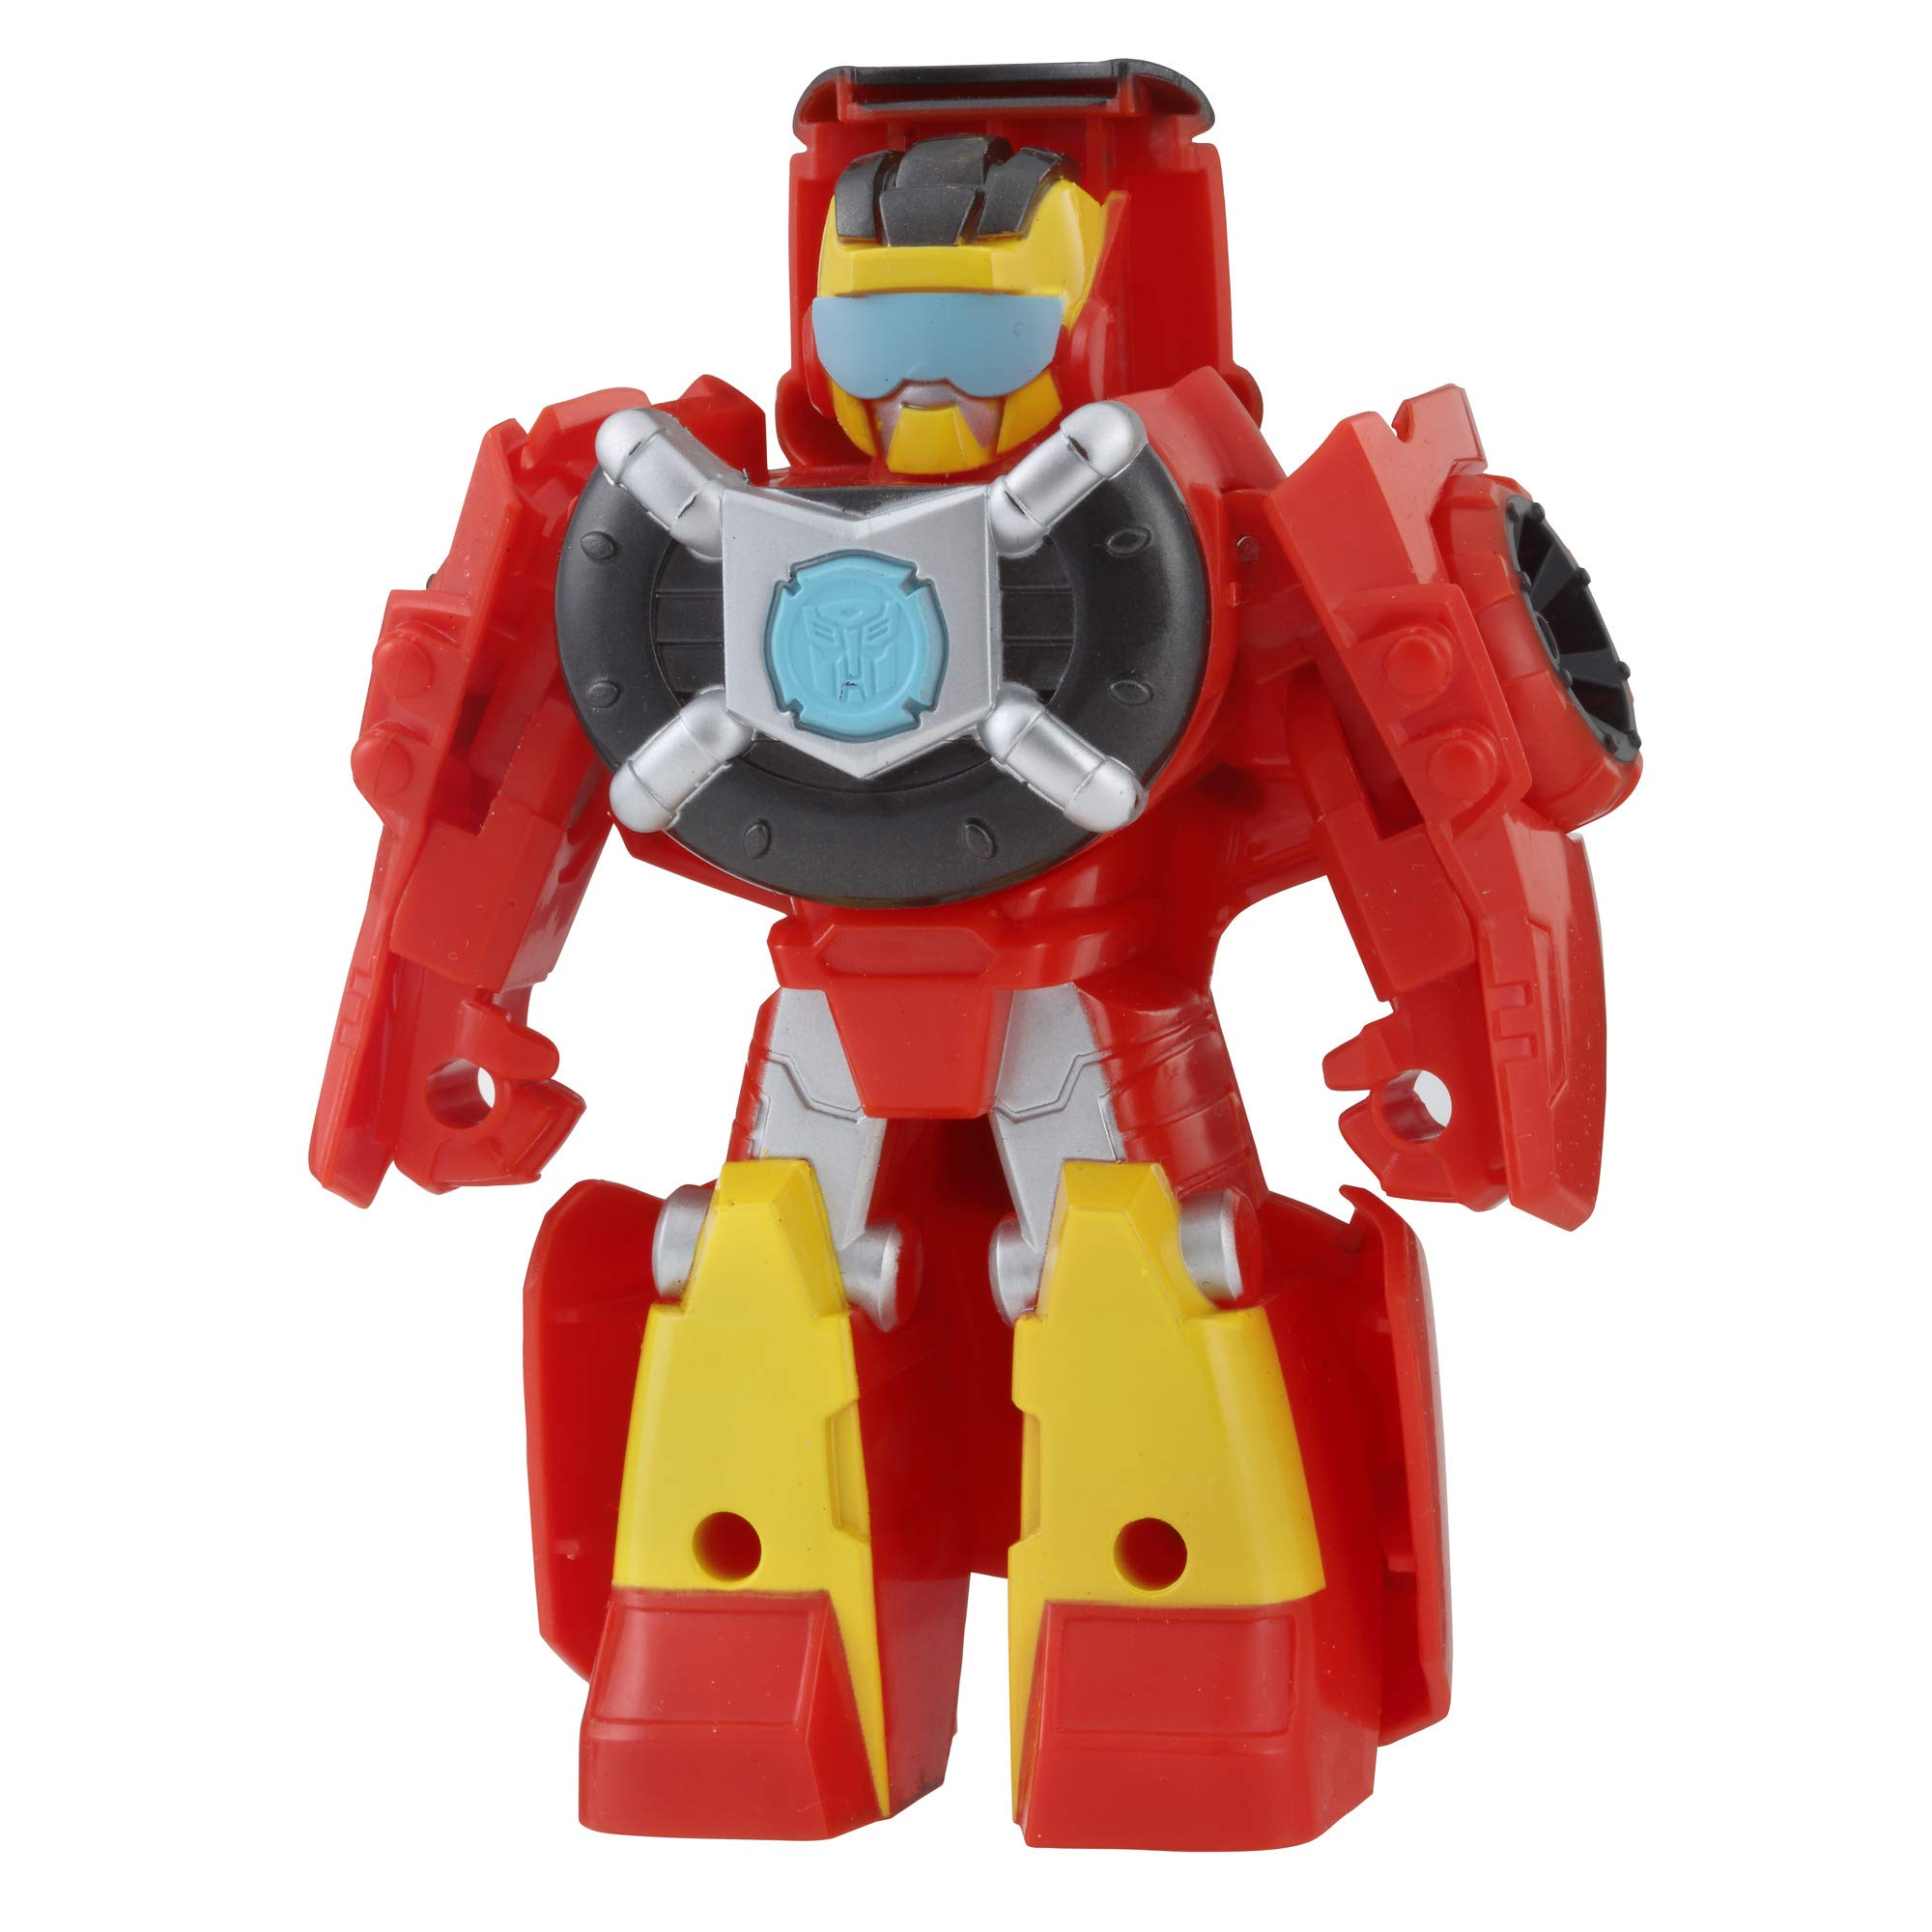 Playskool Tra Rbt Chase The Rescue Dinobot Hasbro E0658